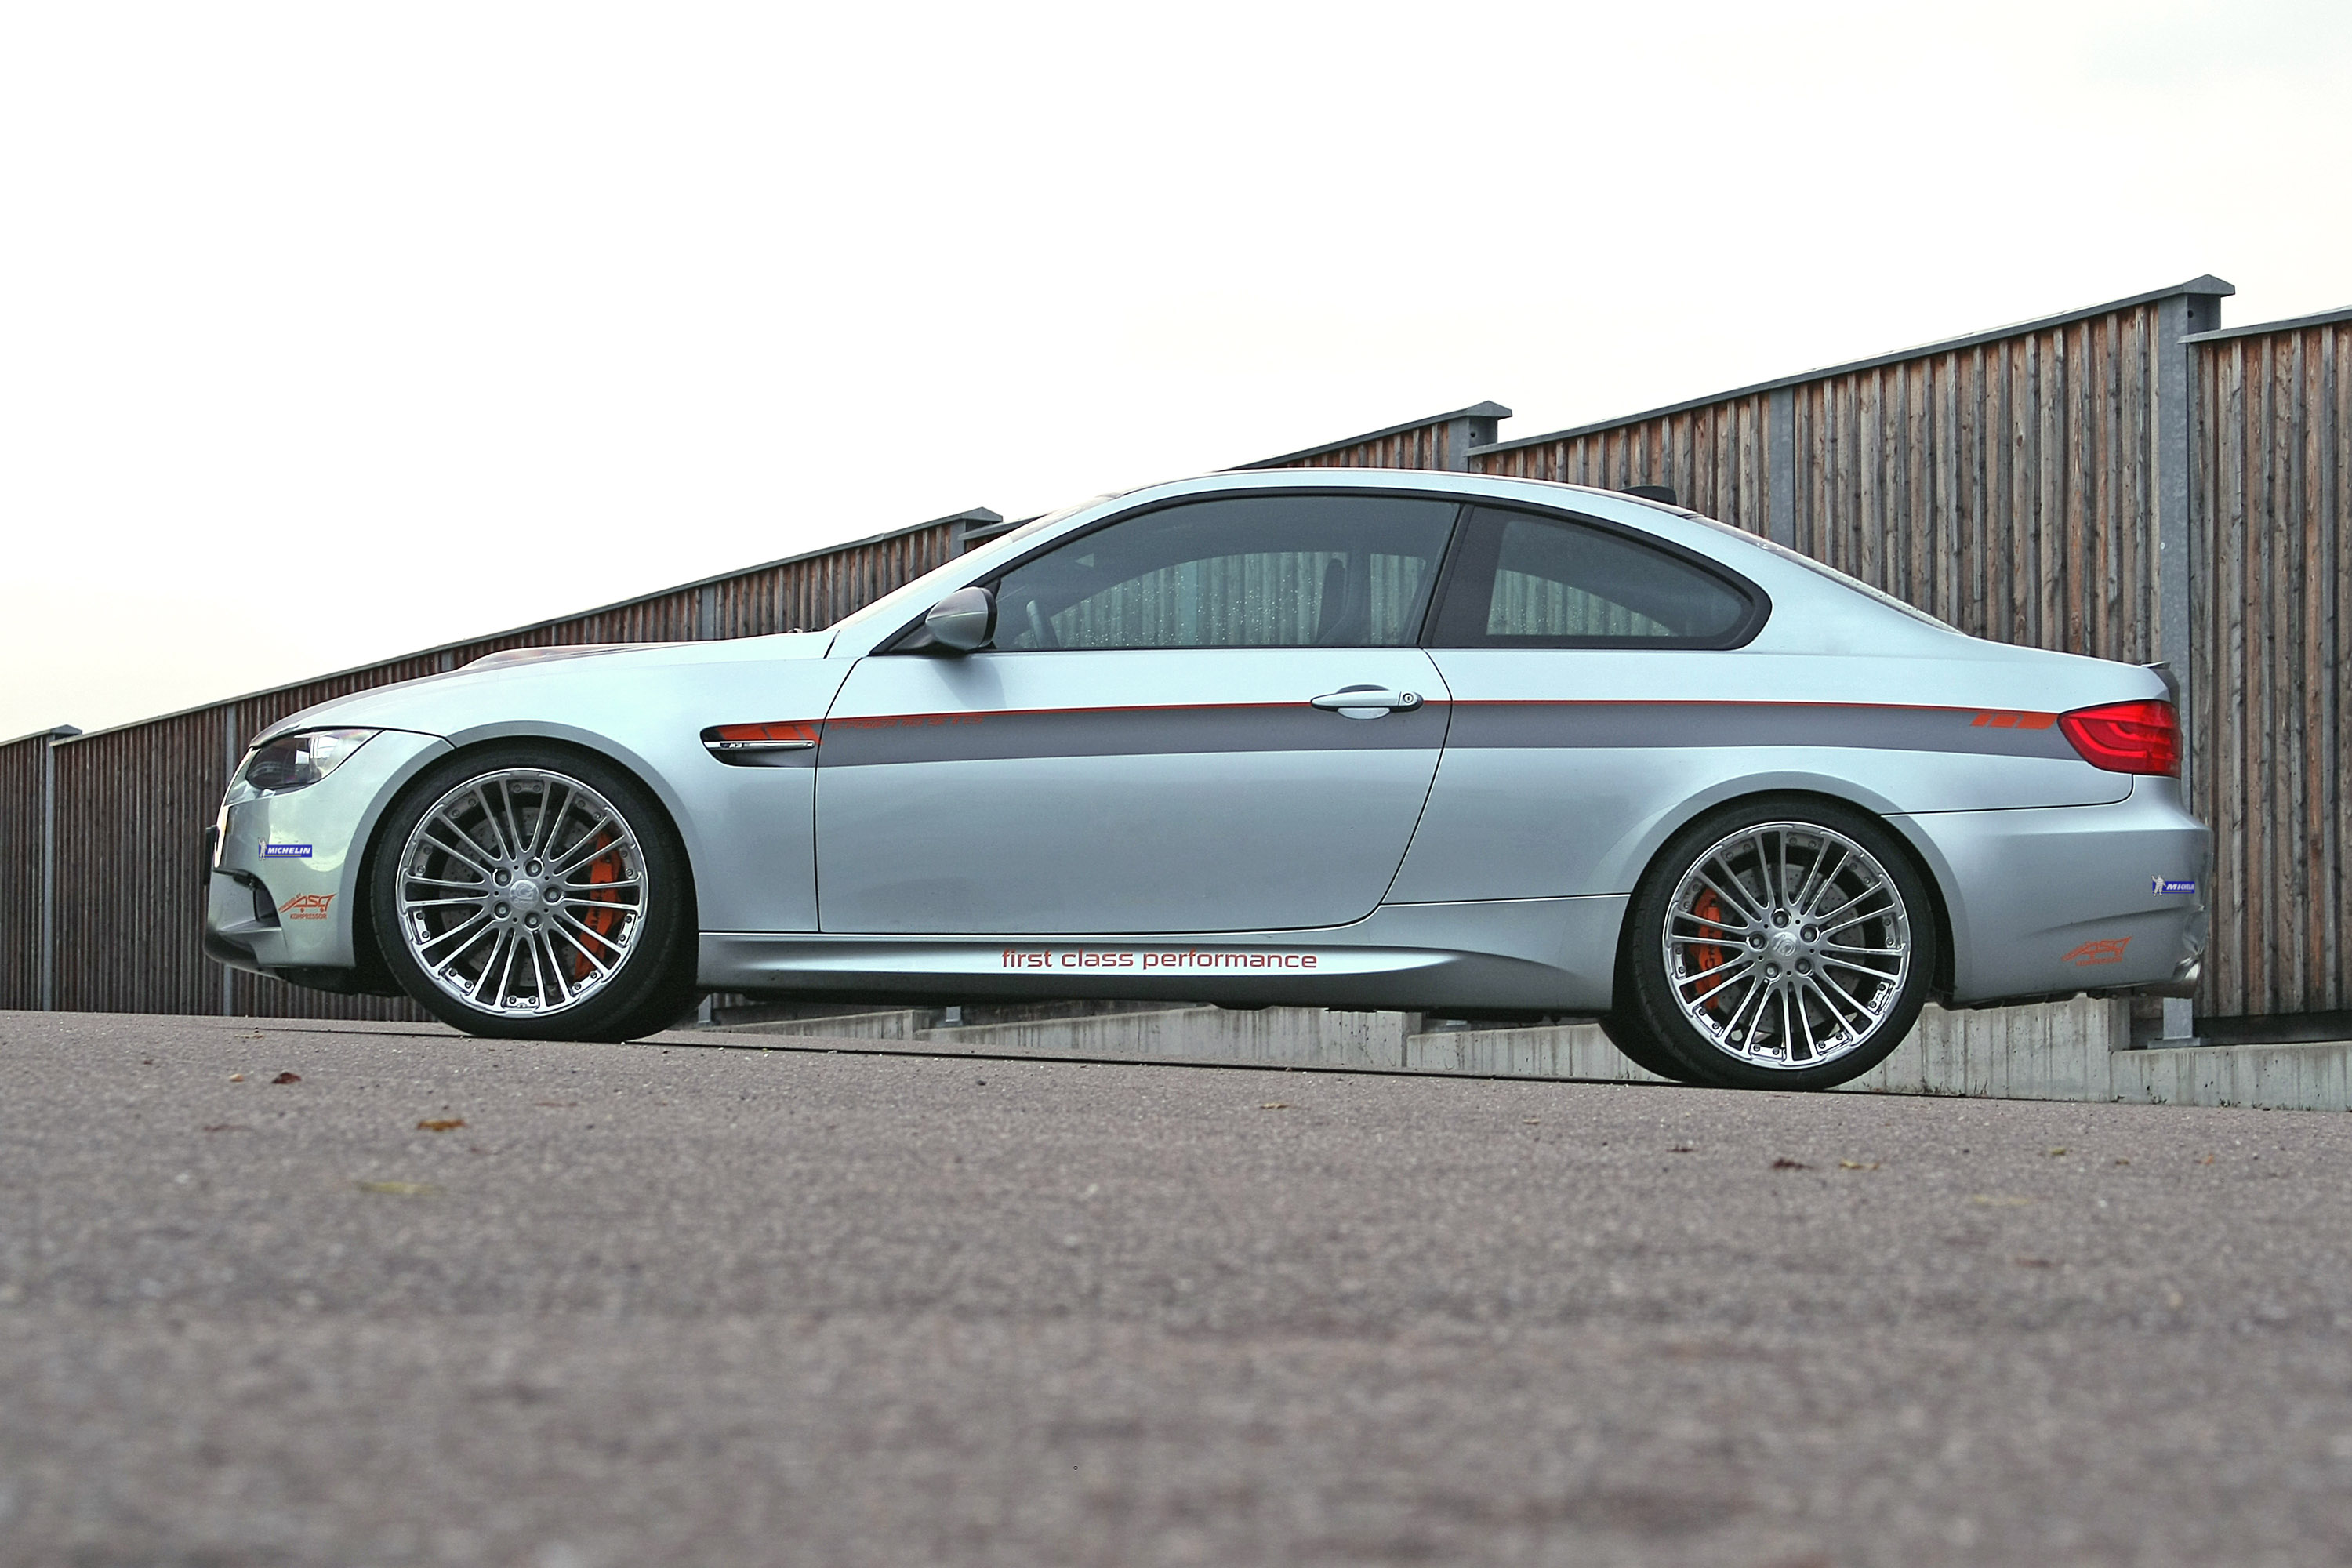 http://www.automobilesreview.com/img/g-power-bmw-m3-e92-hurricane-337-edition/g-power-bmw-m3-e92-hurricane-337-edition-03.jpg